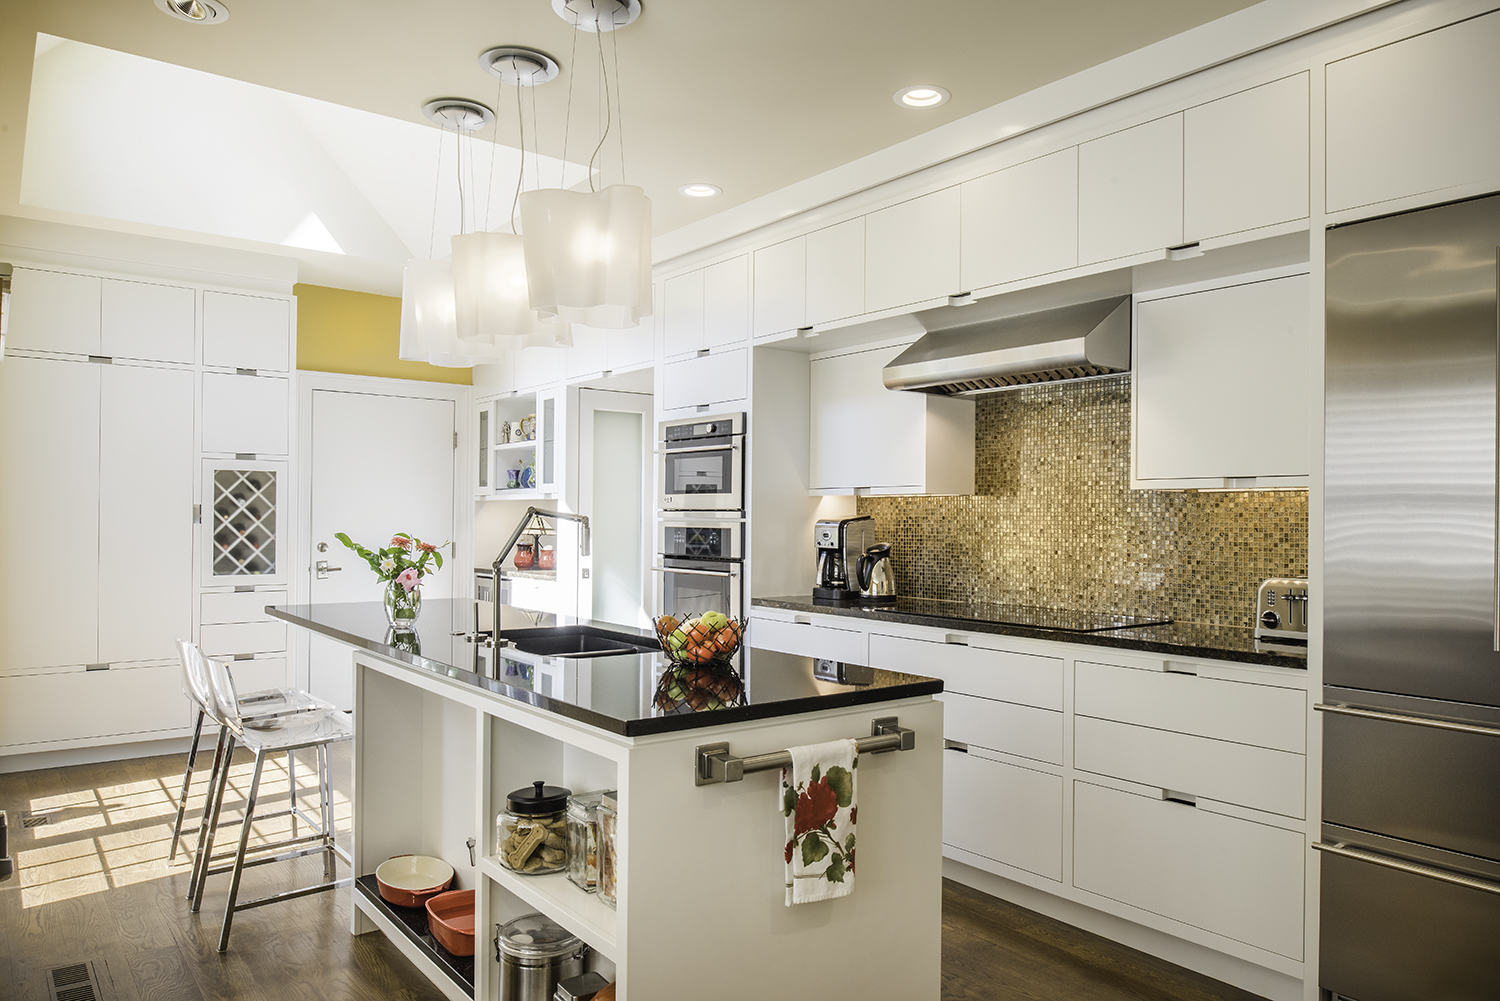 custom solon kitchen white cabinetry gold backsplash